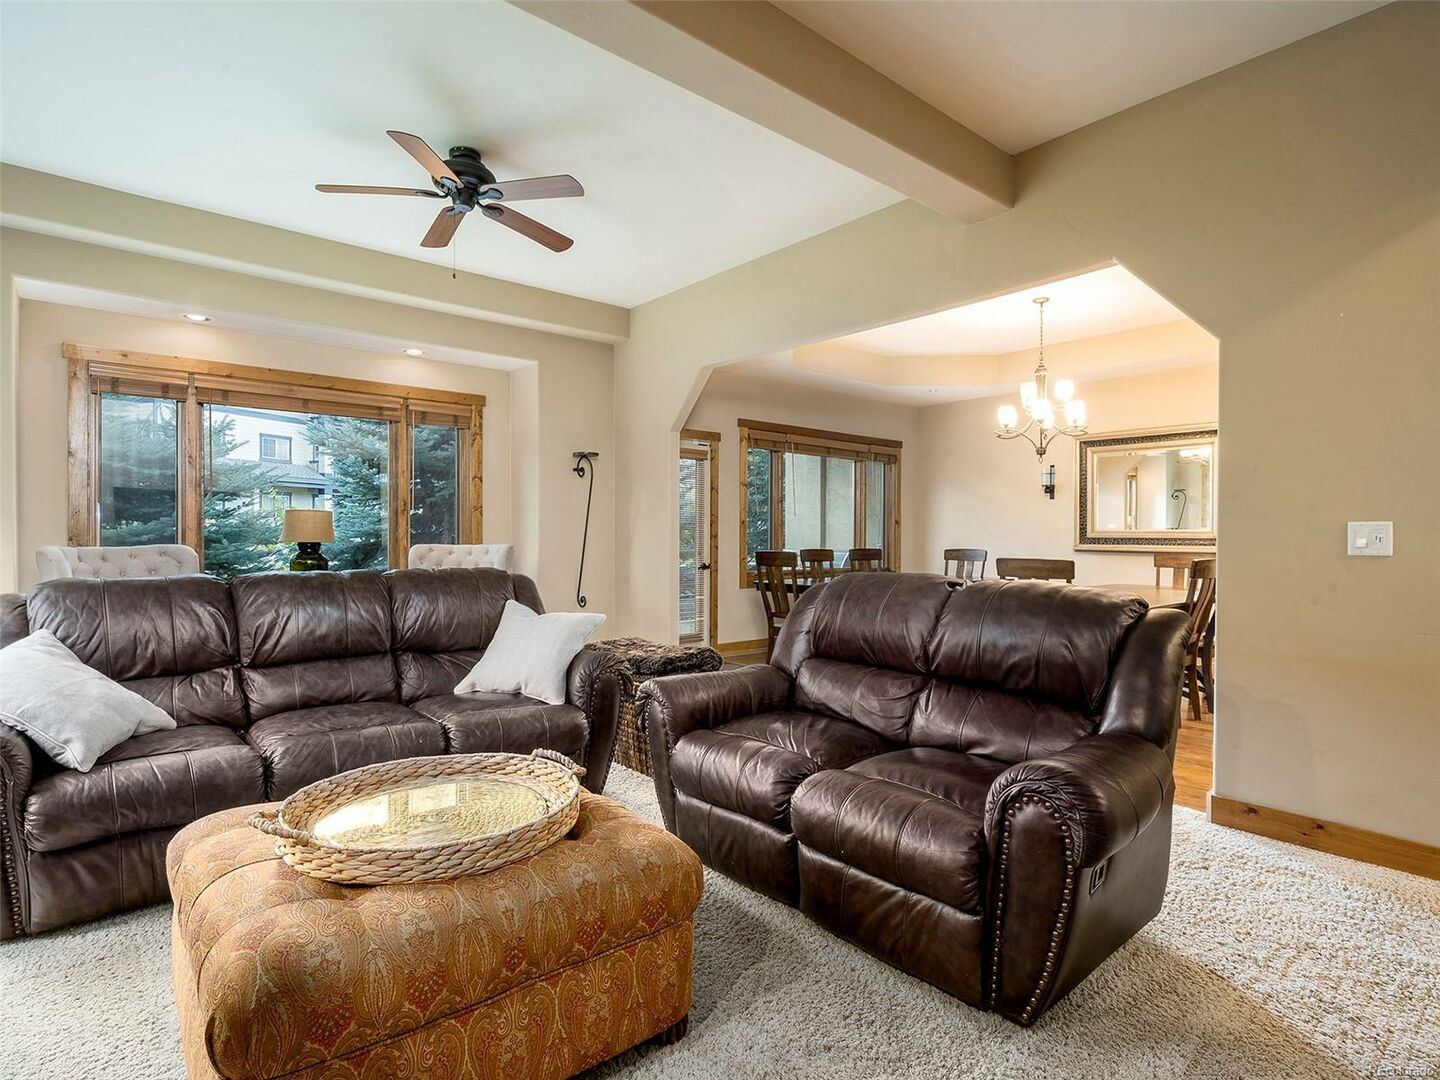 Living Area with Two Sofas, Coffee Table, Ceiling Fan, and Windows.